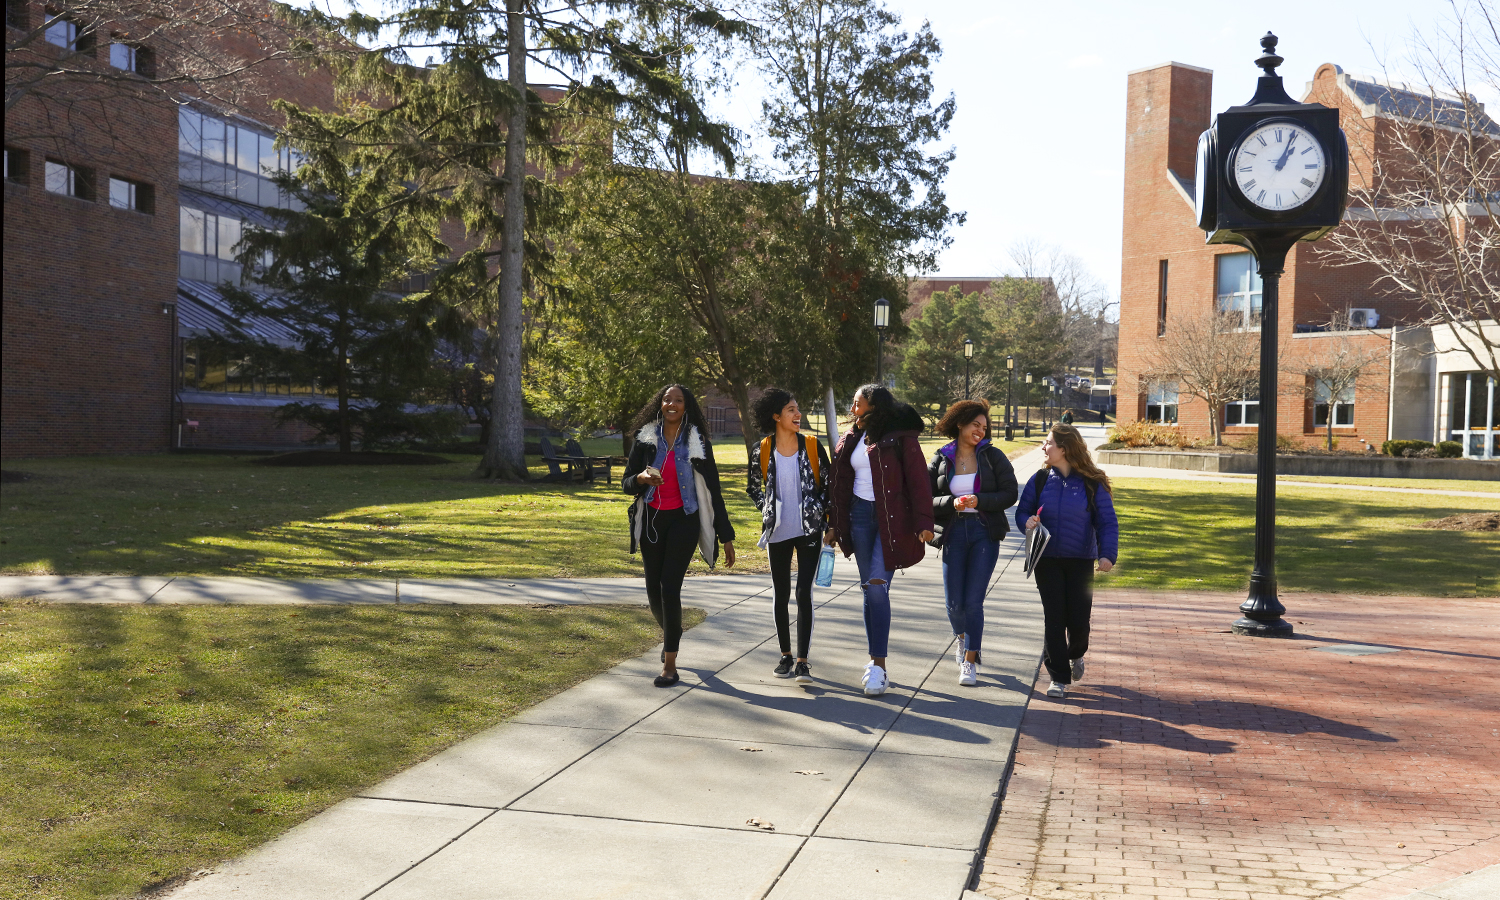 Tebyan Ali '21, ​Alexis Martinez '21, ​Yalemwork Teferra '21, Sarah Starks '21 and Chloe Brown '21 walk through campus.